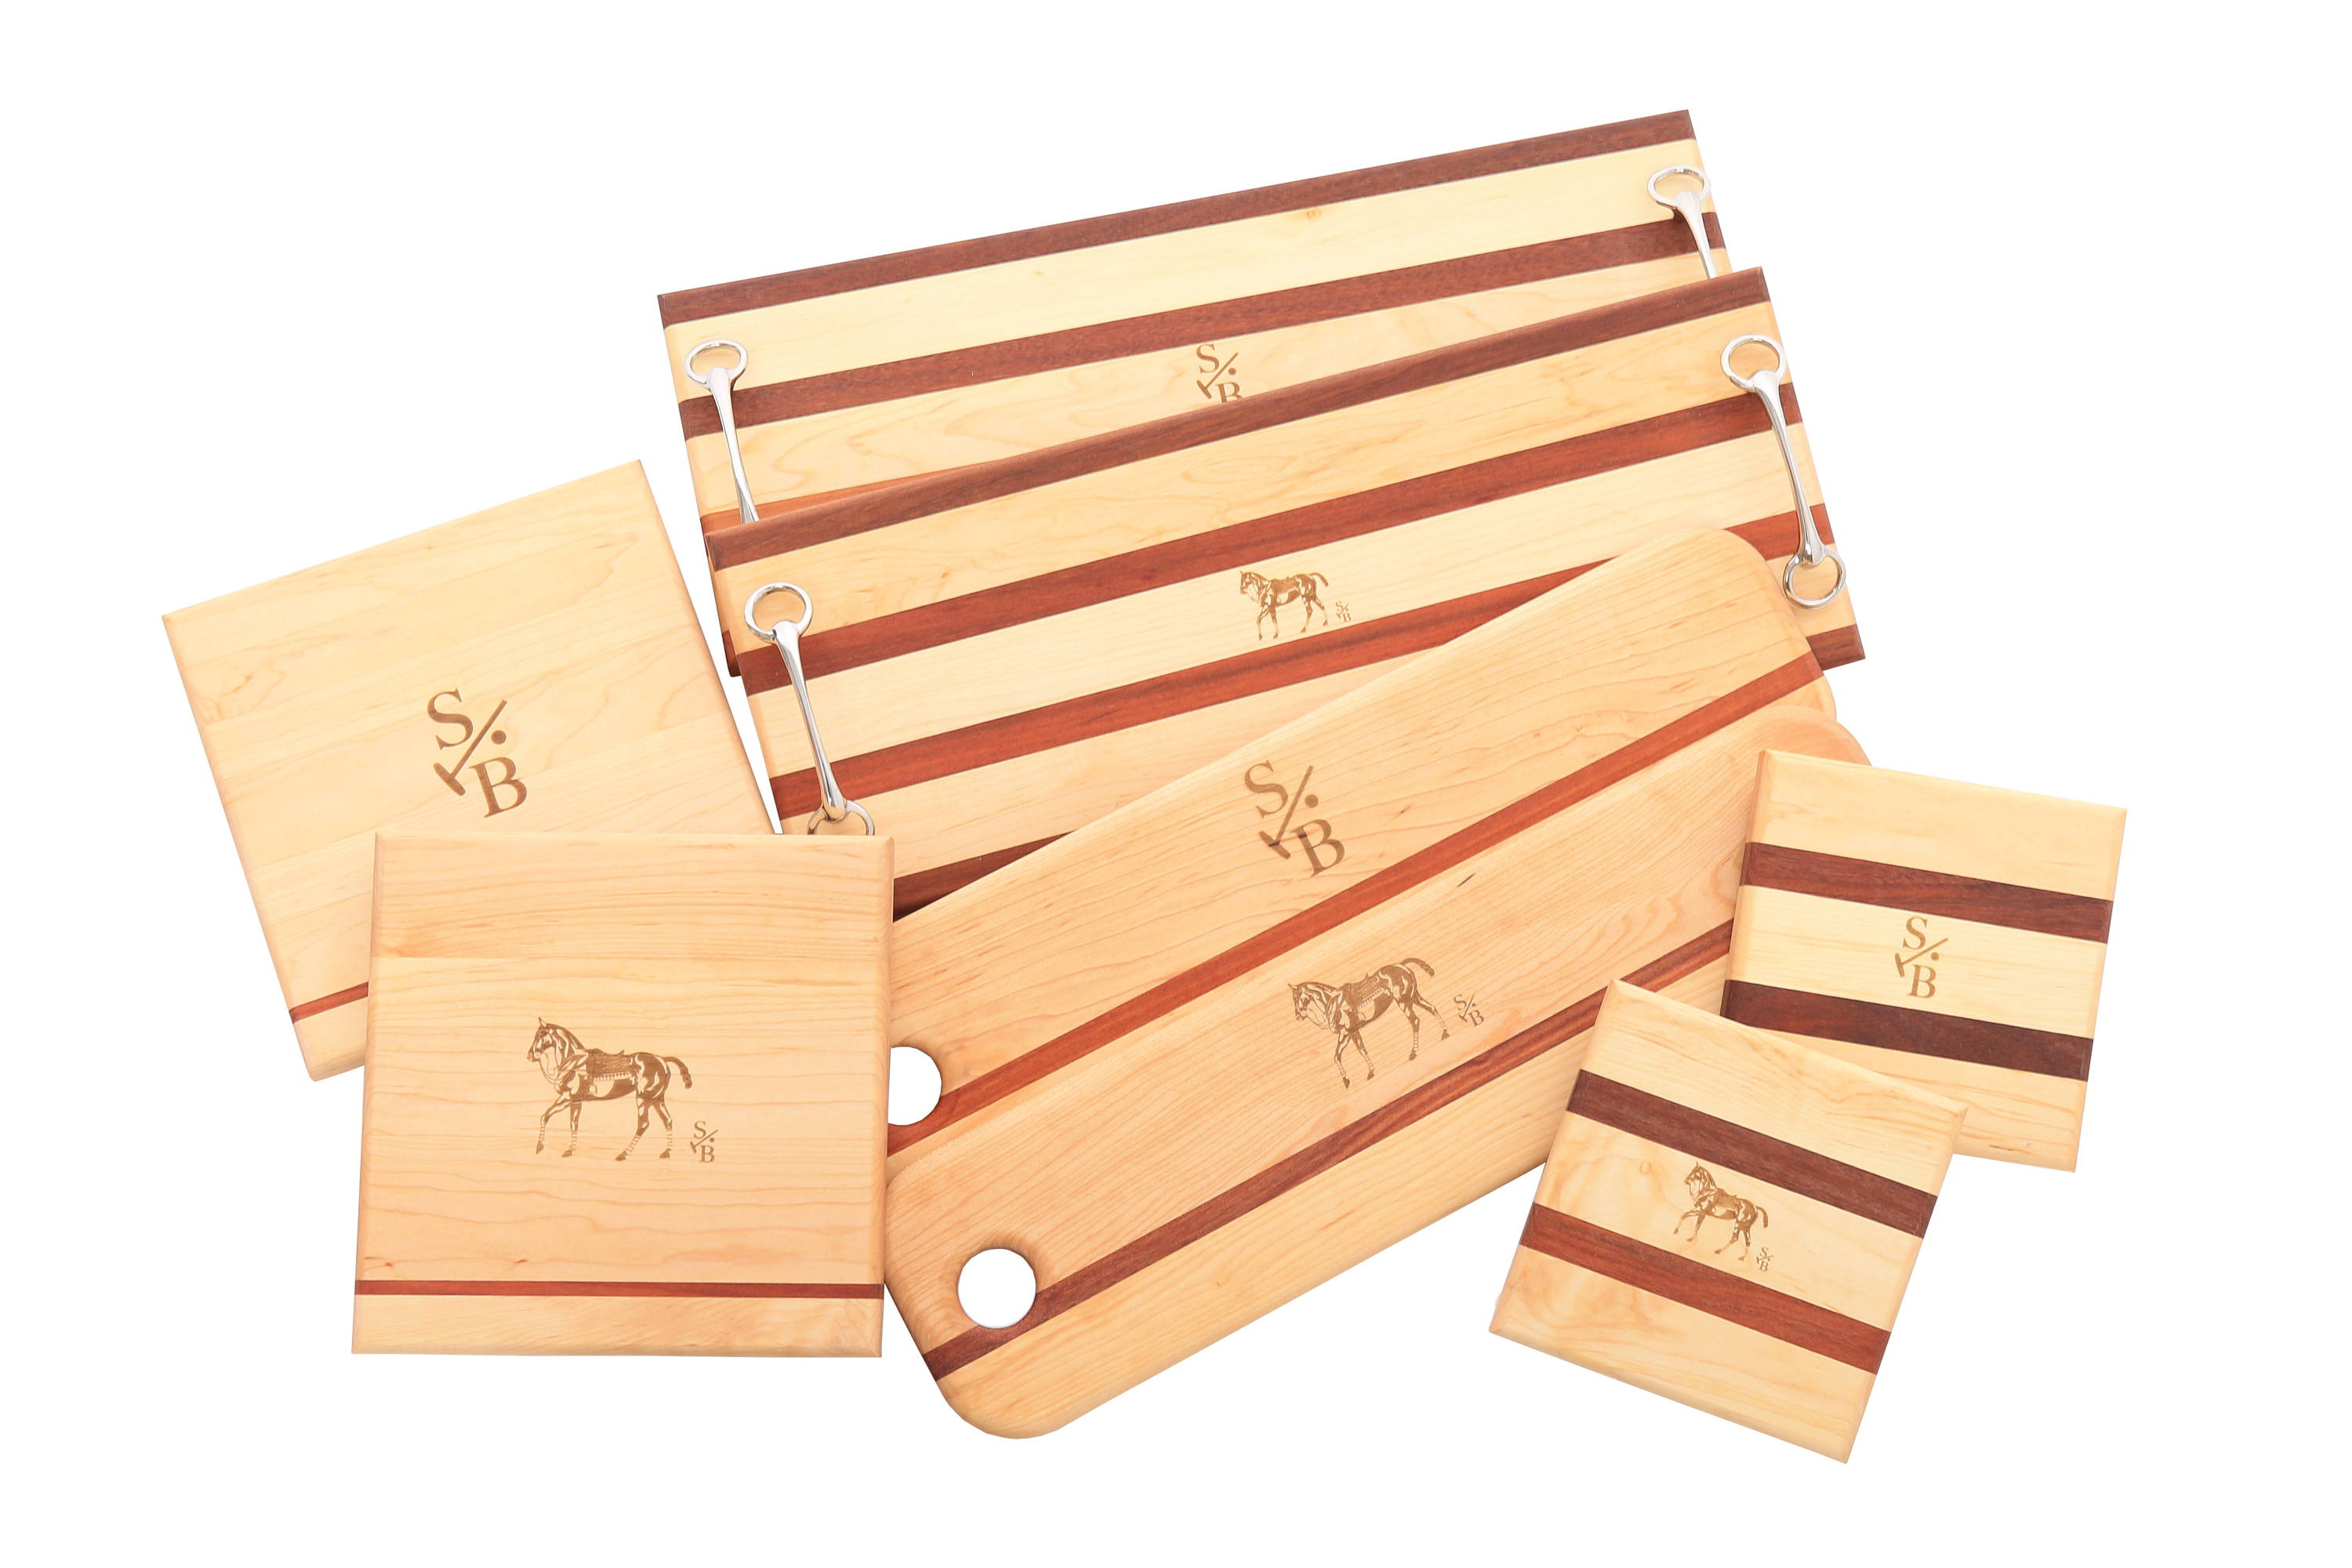 Display of Cheese & Charcuterie Serving Boards with Stick & Ball logo and Polo Pony